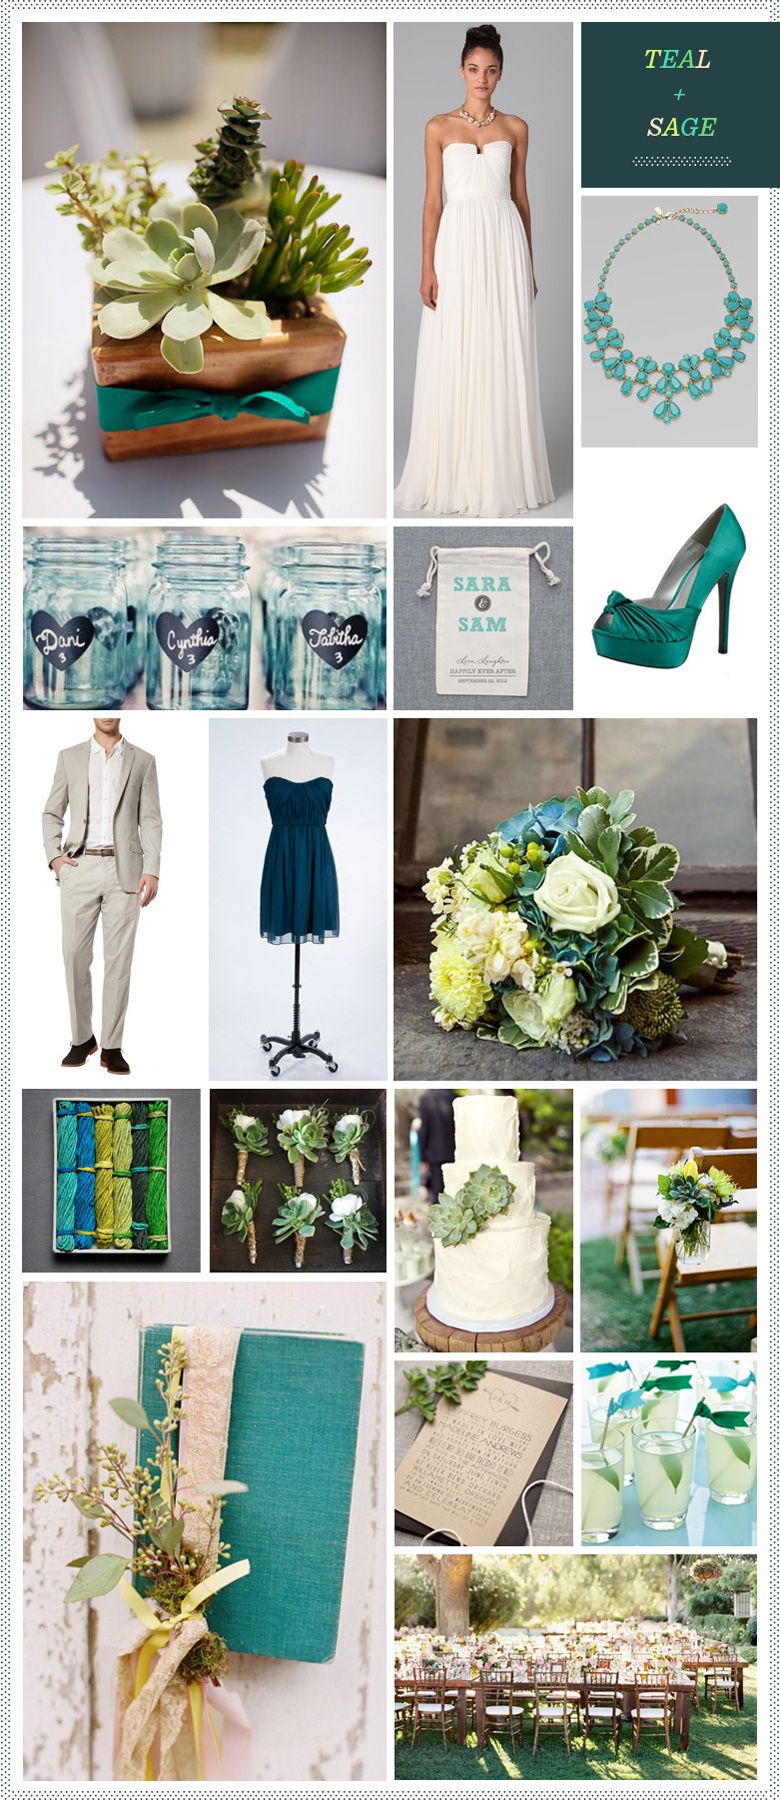 Teal sage wedding inspiration from revel sage wedding - What colors go with sage ...